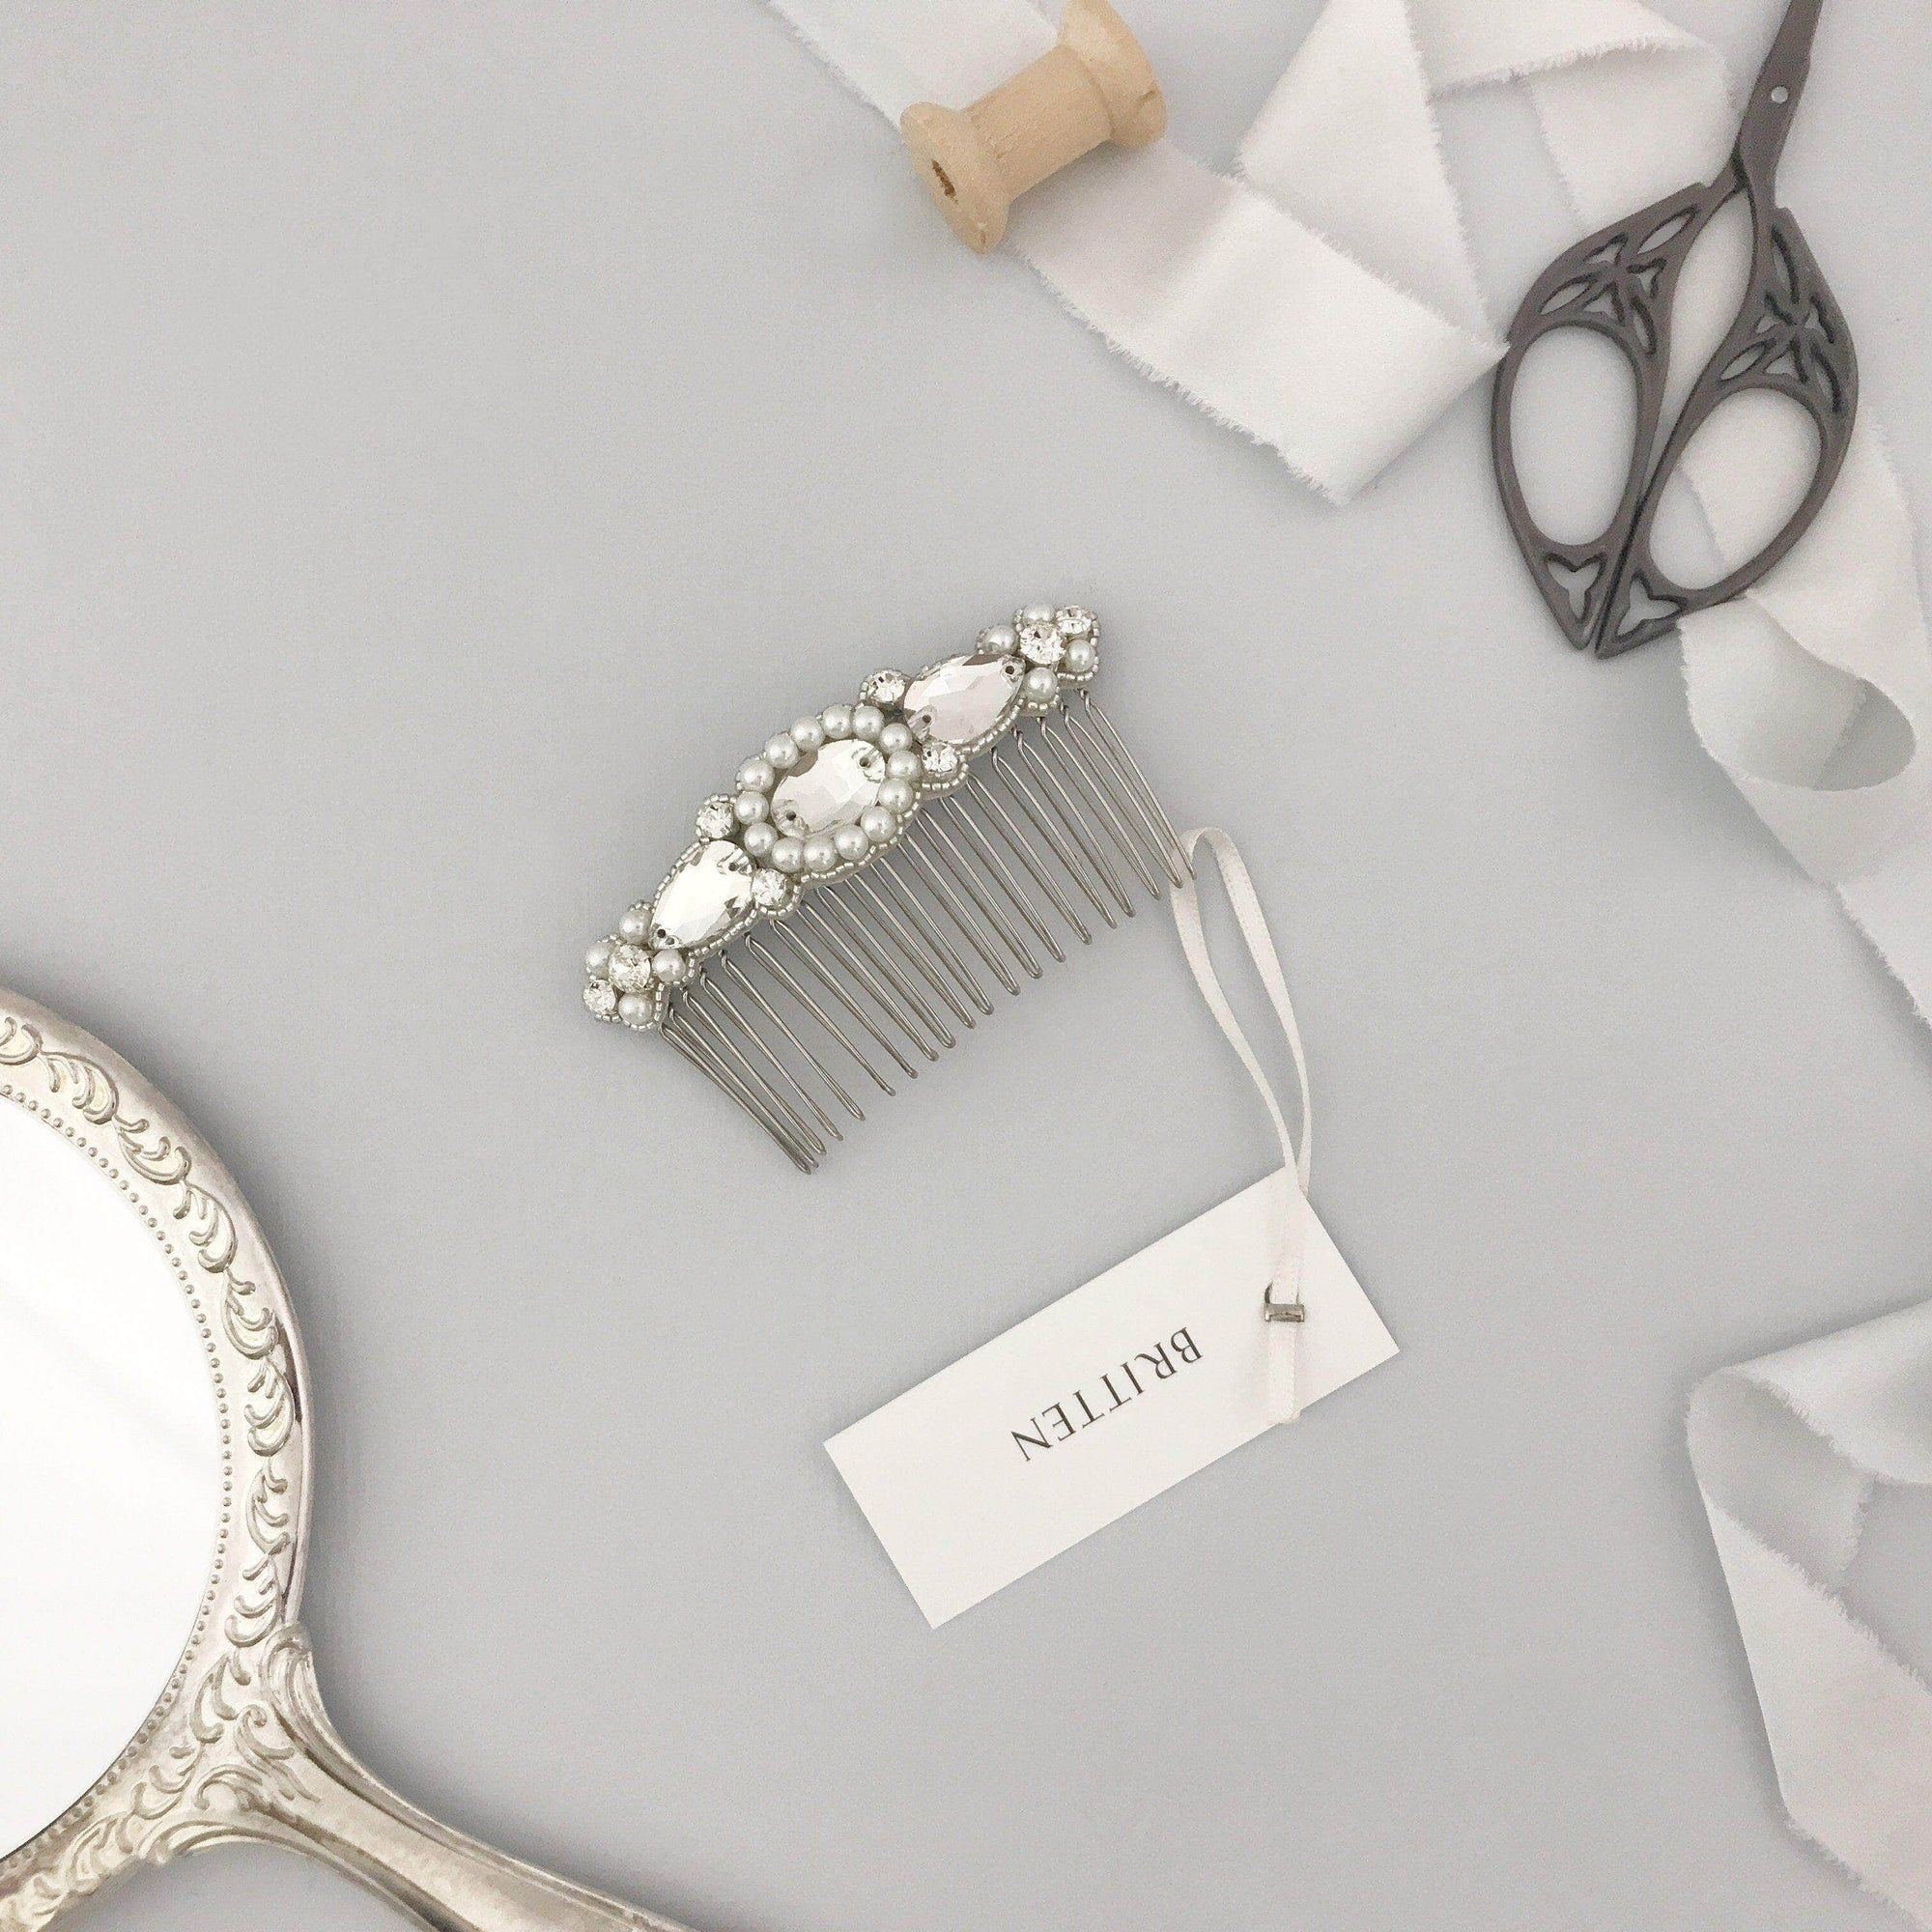 Wedding Haircomb Silver Wedding hair comb with a sparkling arrangement of pearls and crystals in silver - 'Nåim'